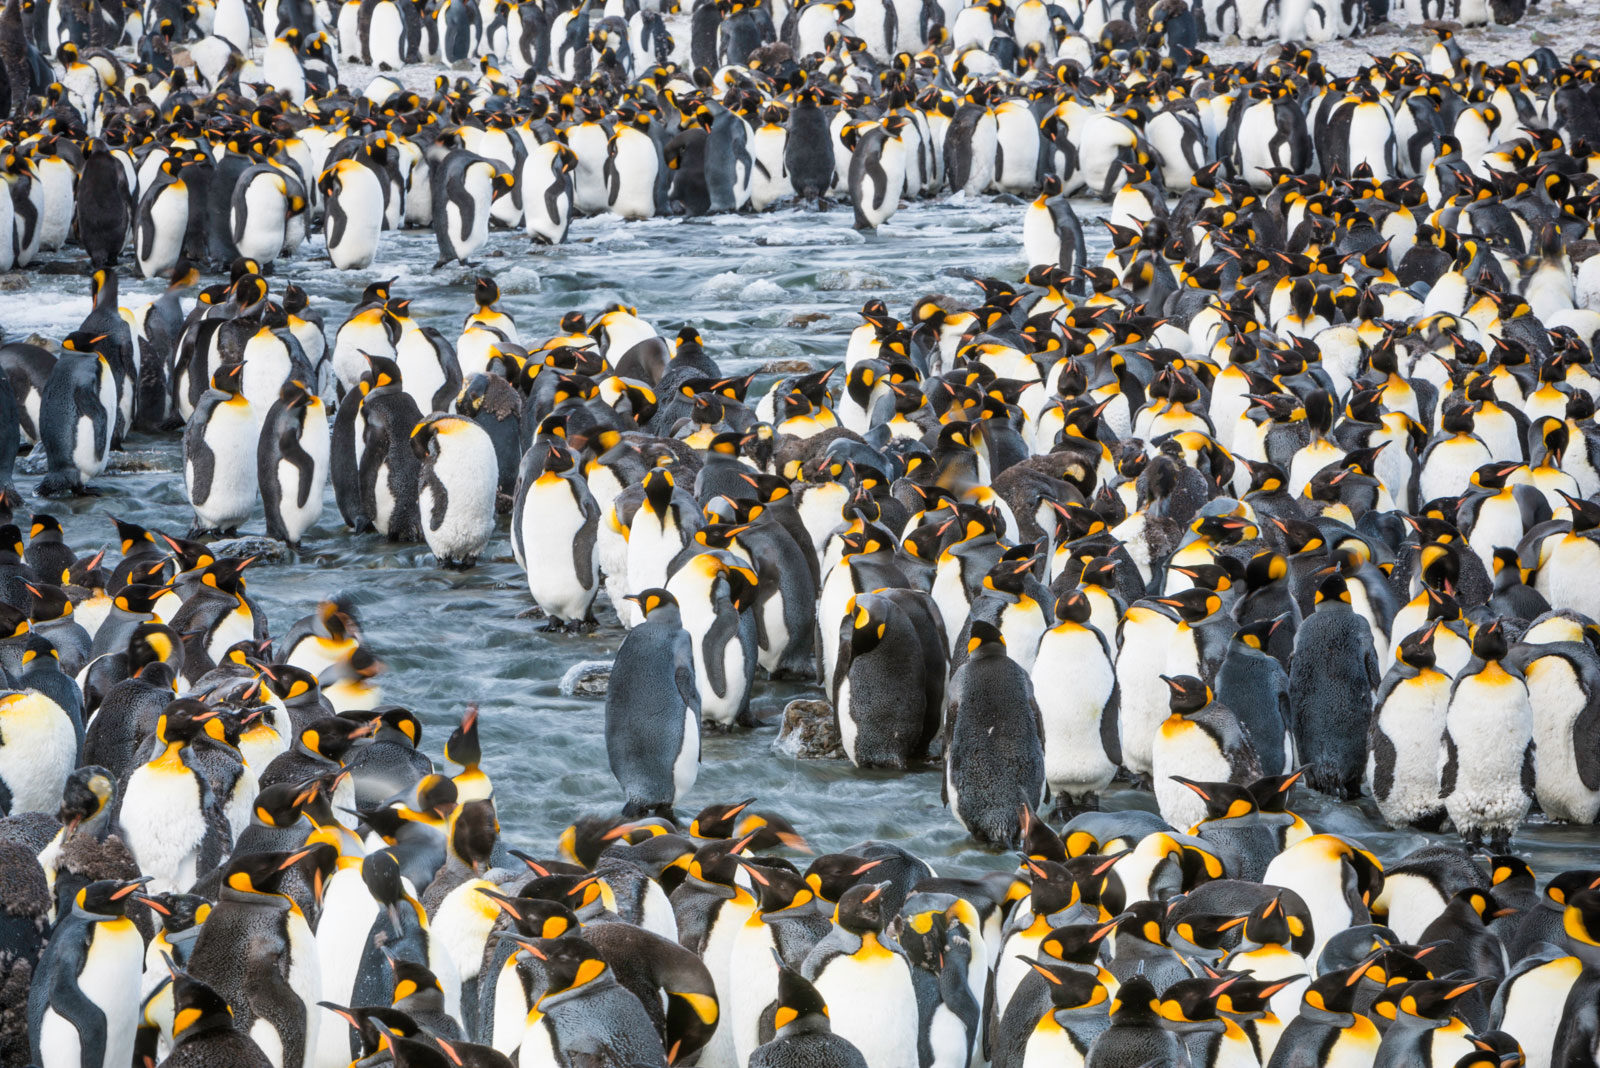 King Penguin colony, St. Andrews Bay, South Georgia Island, Antarctica